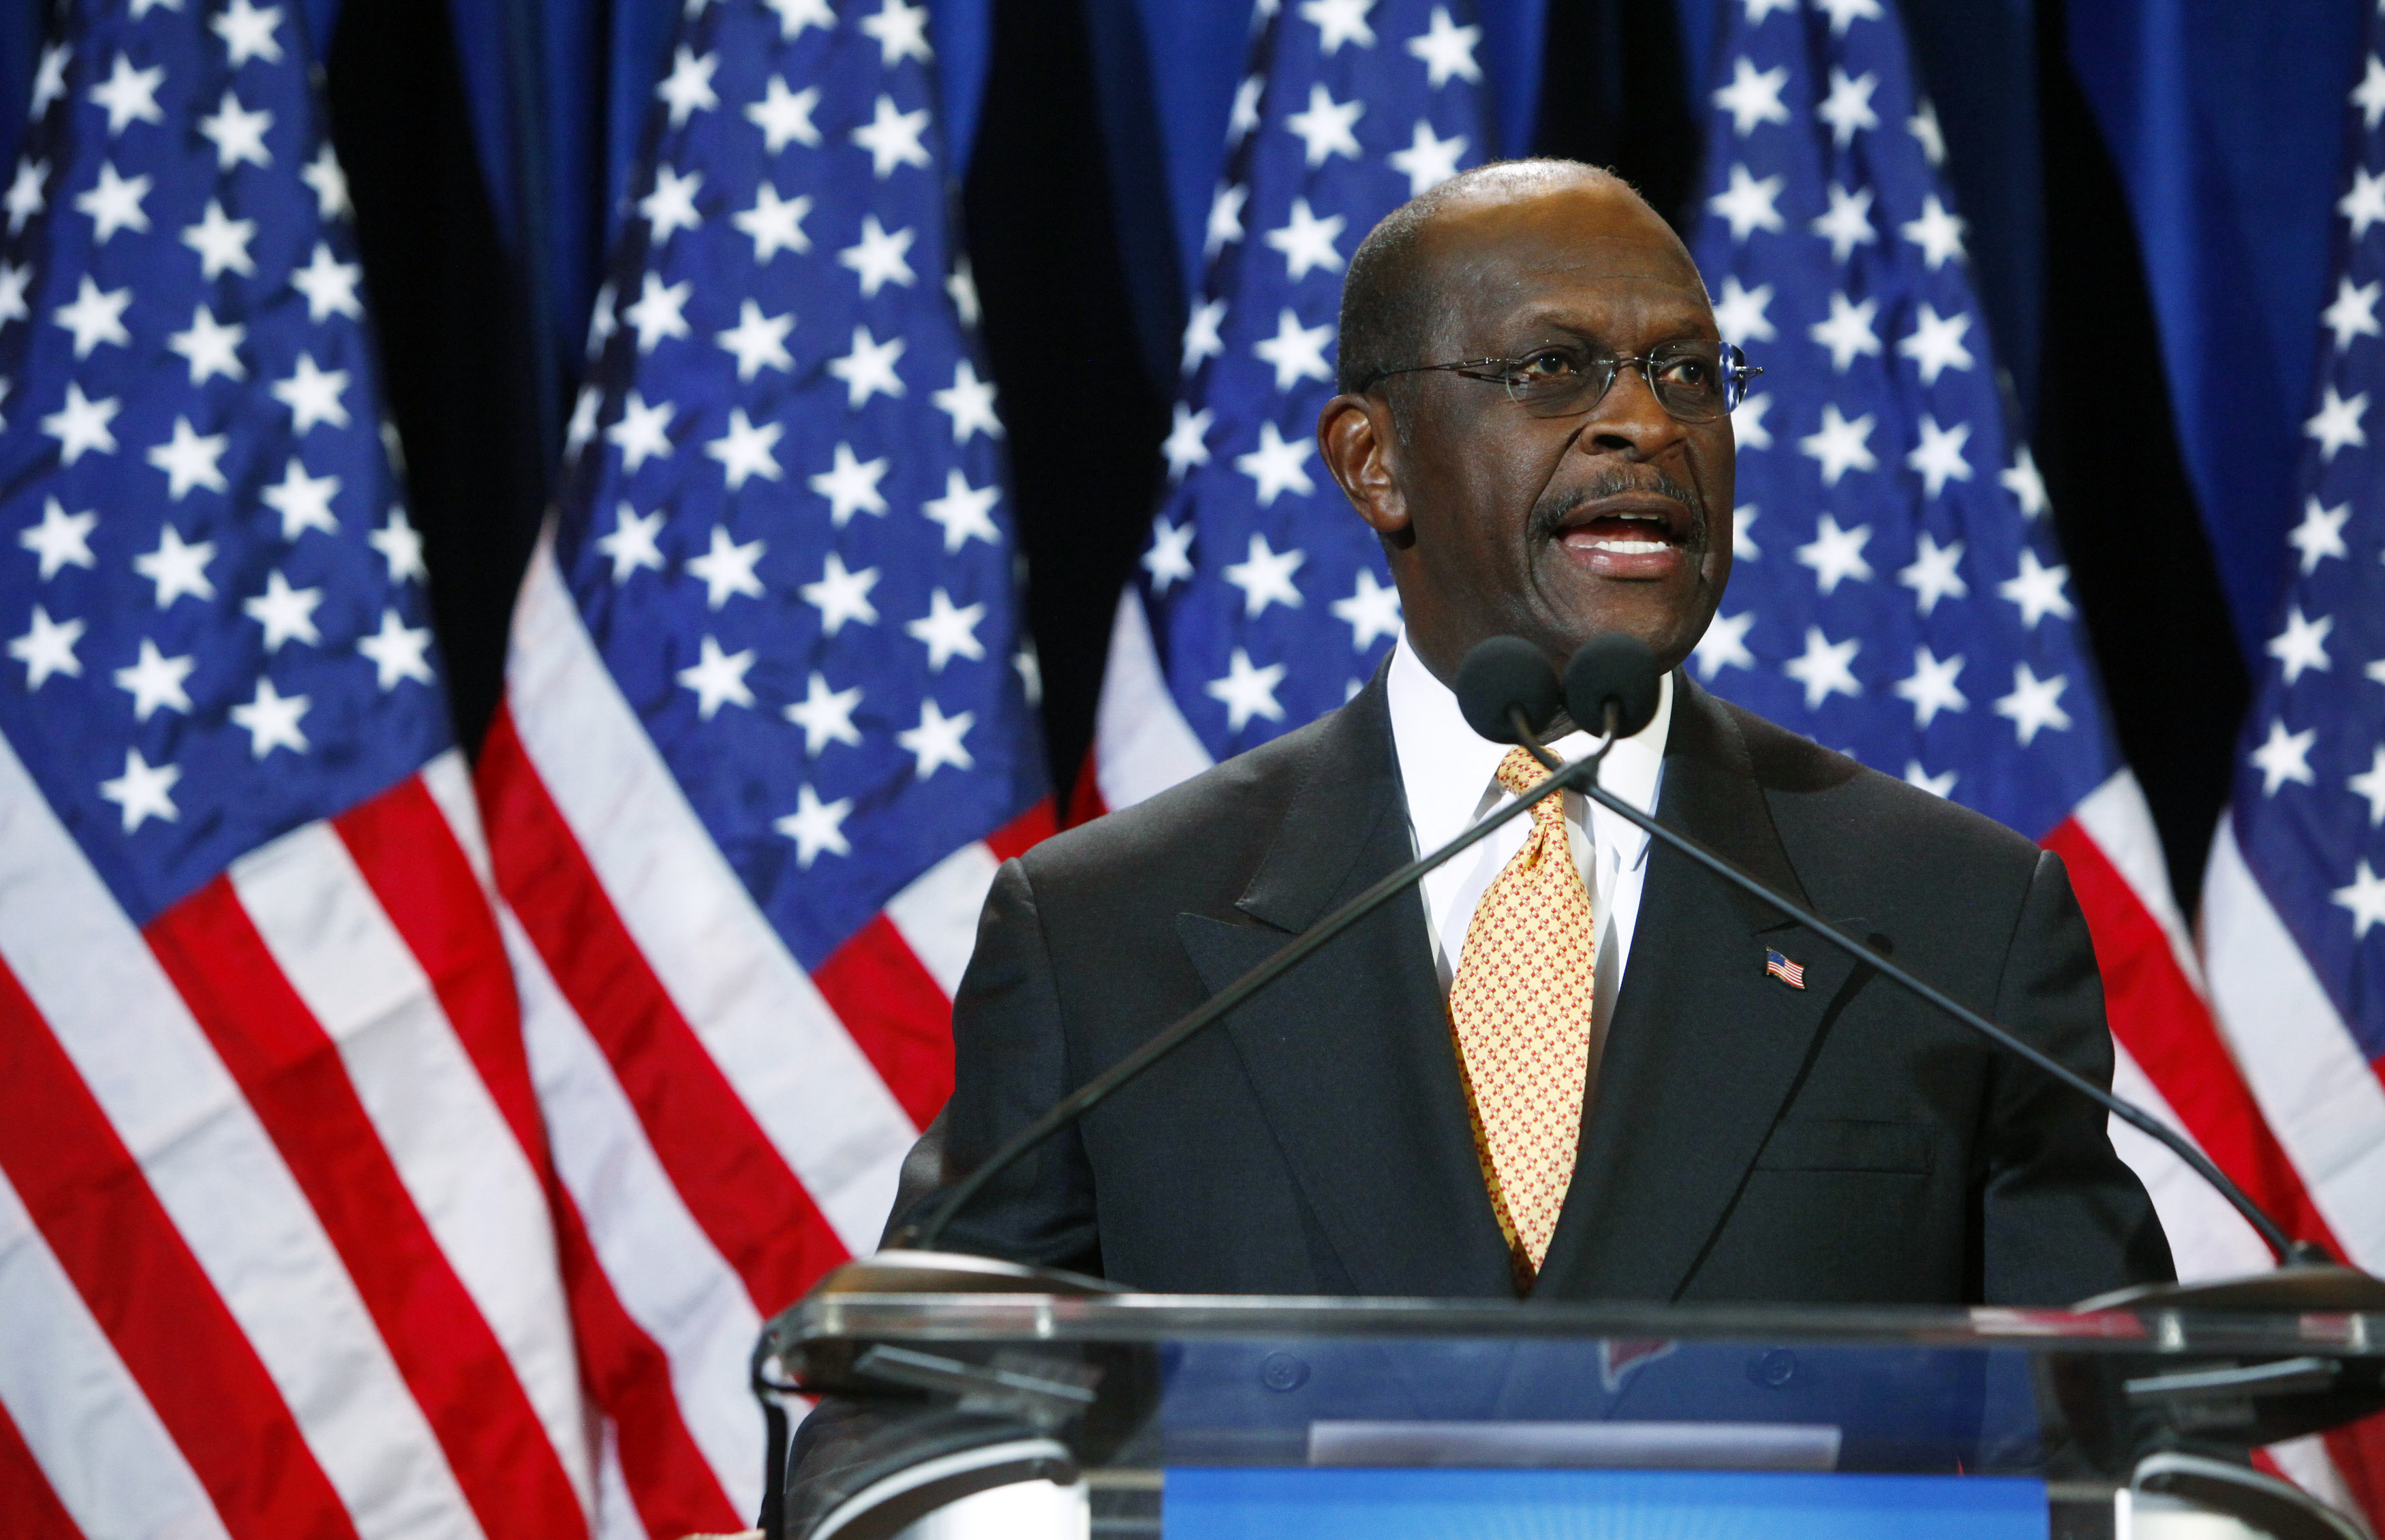 Republican presidential candidate and former Godfather's Pizza CEO Herman Cain speaks at a press conference November 8, 2011 in Scottsdale, Arizona. Cain is facing pressure after a fourth woman came forward Monday to accuse Cain of inappropriate behavior when he was while CEO of the National Restaurant Association. (Photo by Eric Thayer/Getty Images)